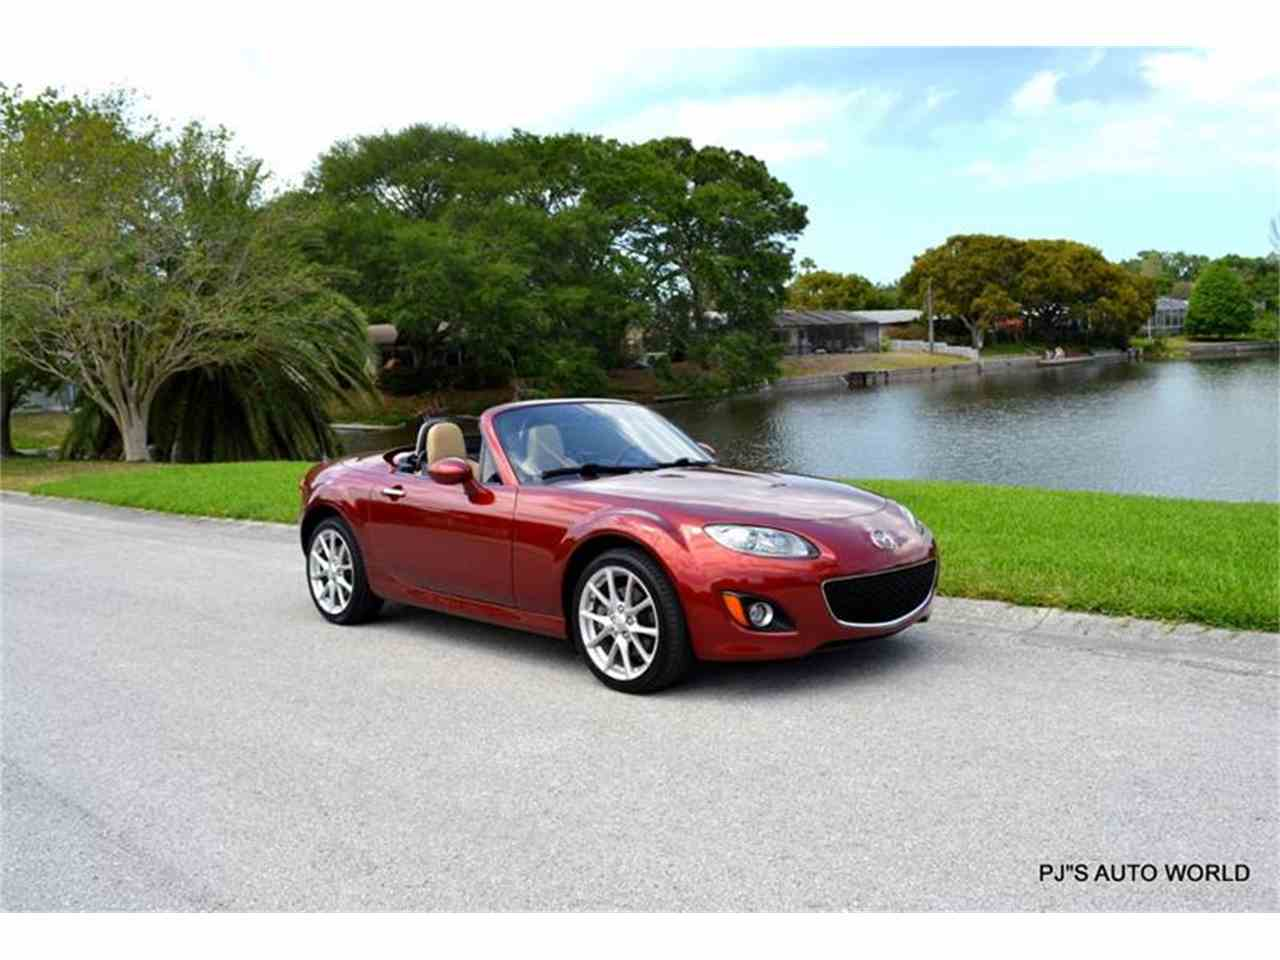 Large Picture of 2012 Mazda Miata located in Clearwater Florida - $16,600.00 Offered by PJ's Auto World - L6IJ